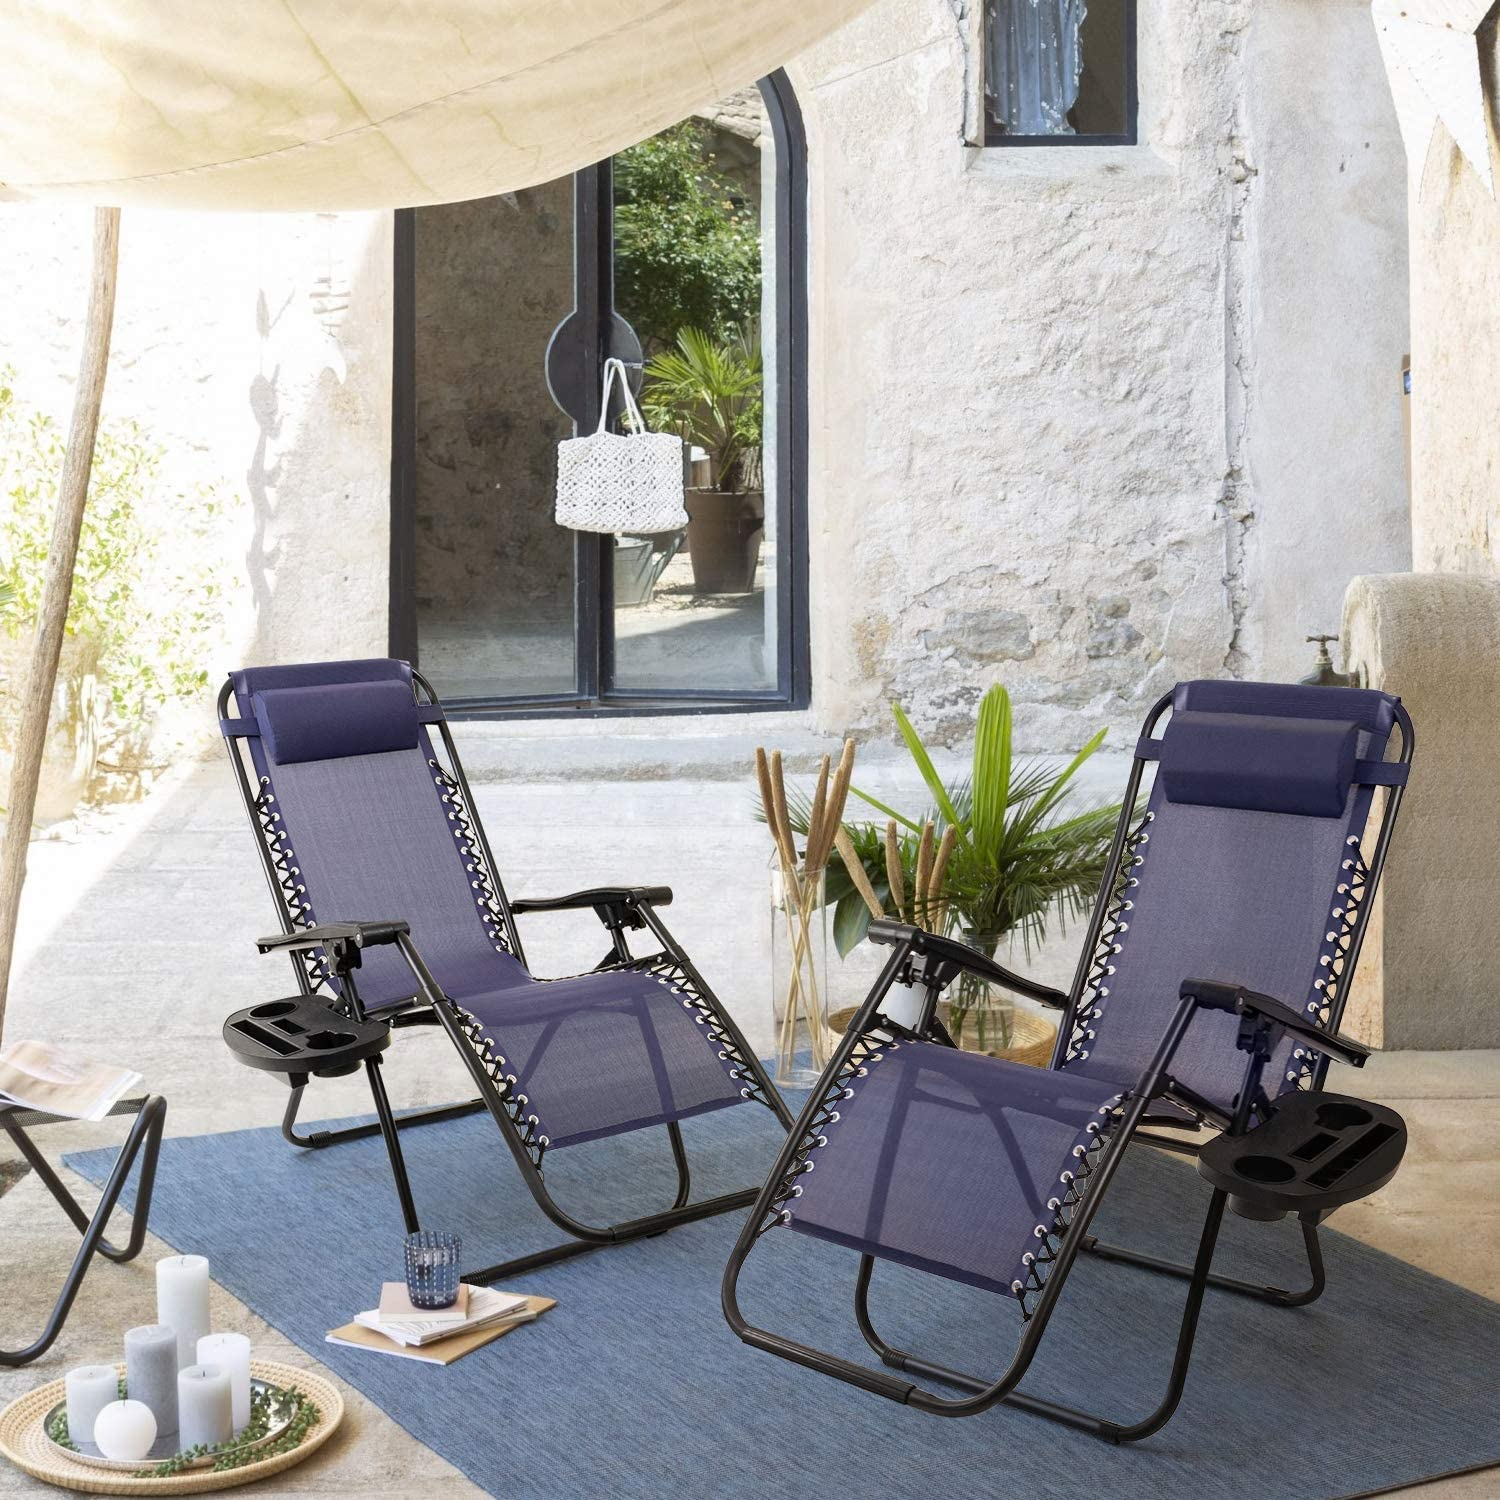 vineego zero gravity chair set of 2 camp reclining lounge chairs outdoor lounge patio chair with adjustable pillow 2 pack blue